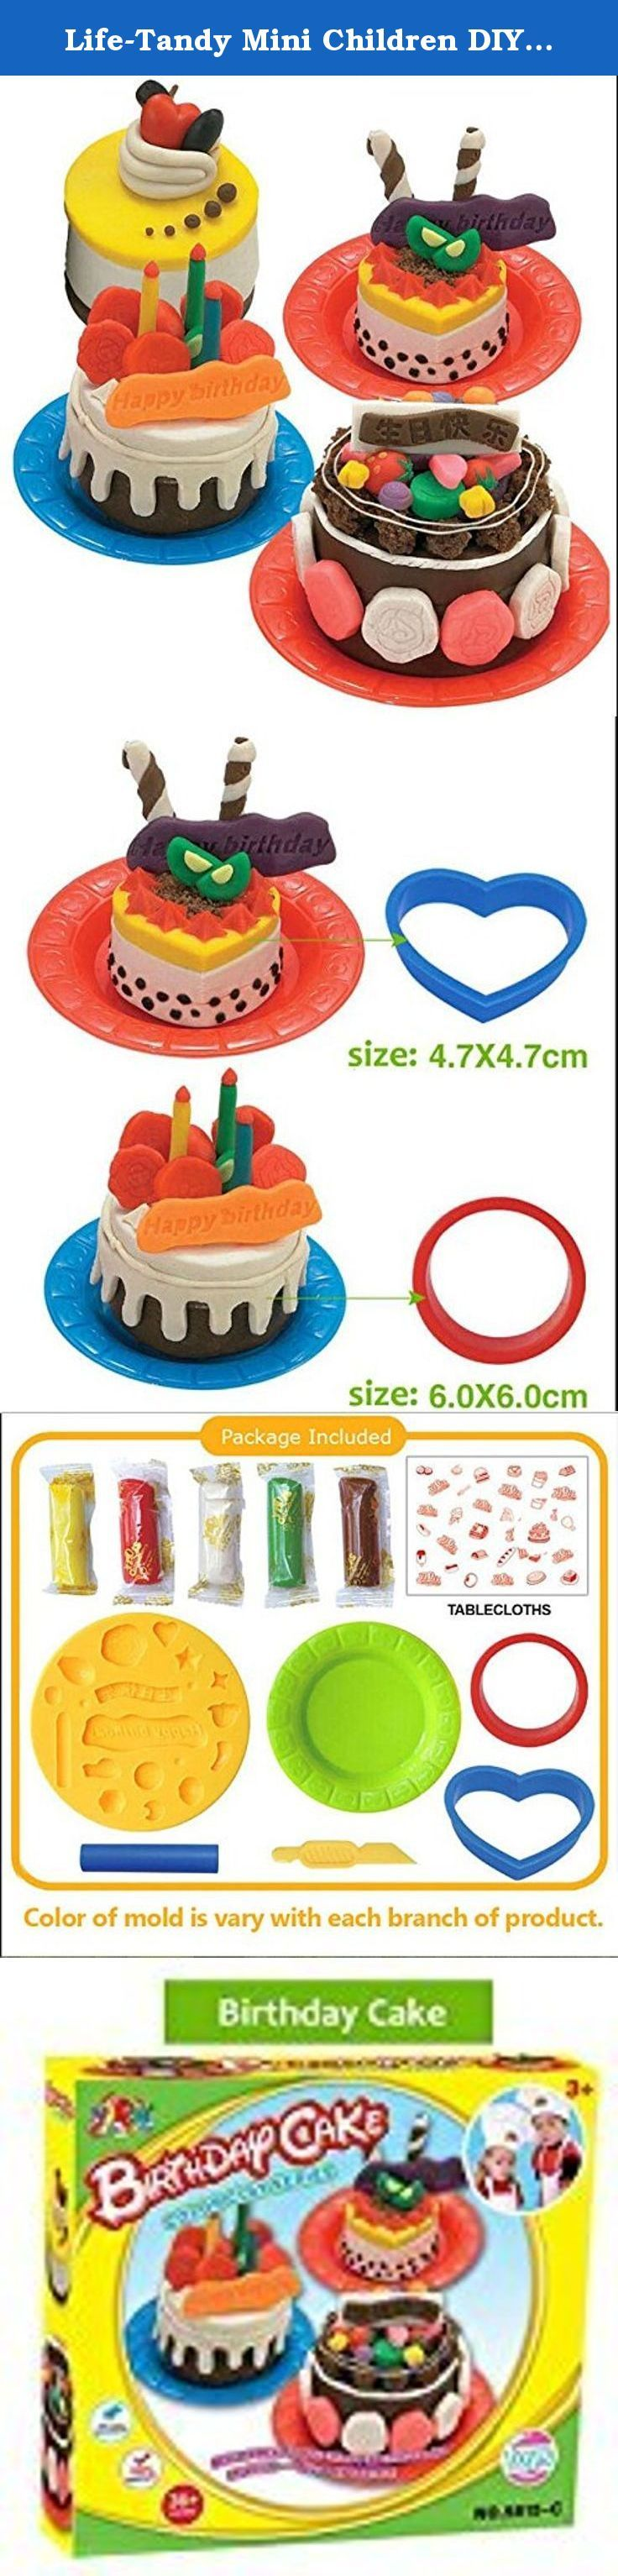 Life-Tandy Mini Children DIY Birthday Cake Maker Play Dough Mold For Pretend Play. 1.Size:17*4*15 cm 2.Mud Composition:Mud is made of flour. 3.purified water and edible pigment. 4.It's non-toxic, no stimulation to the skin. 5. There will be a certain flavor. 6.Mudhieves food grade standards, even if the baby put it into his mouth, it's no problem!.